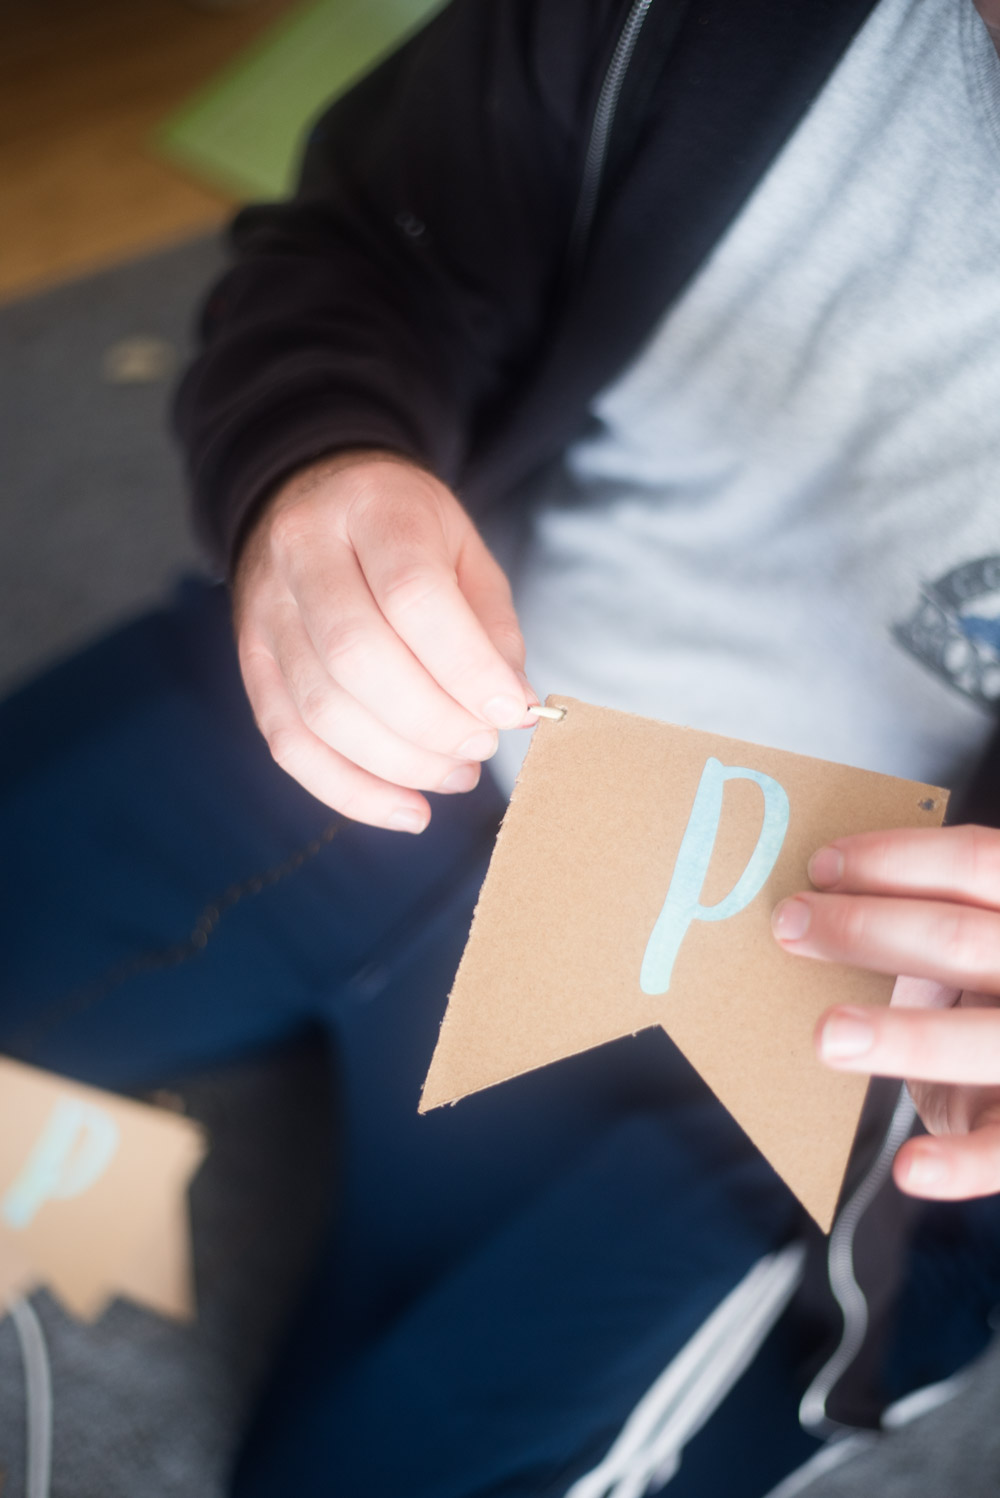 p on a chipboard